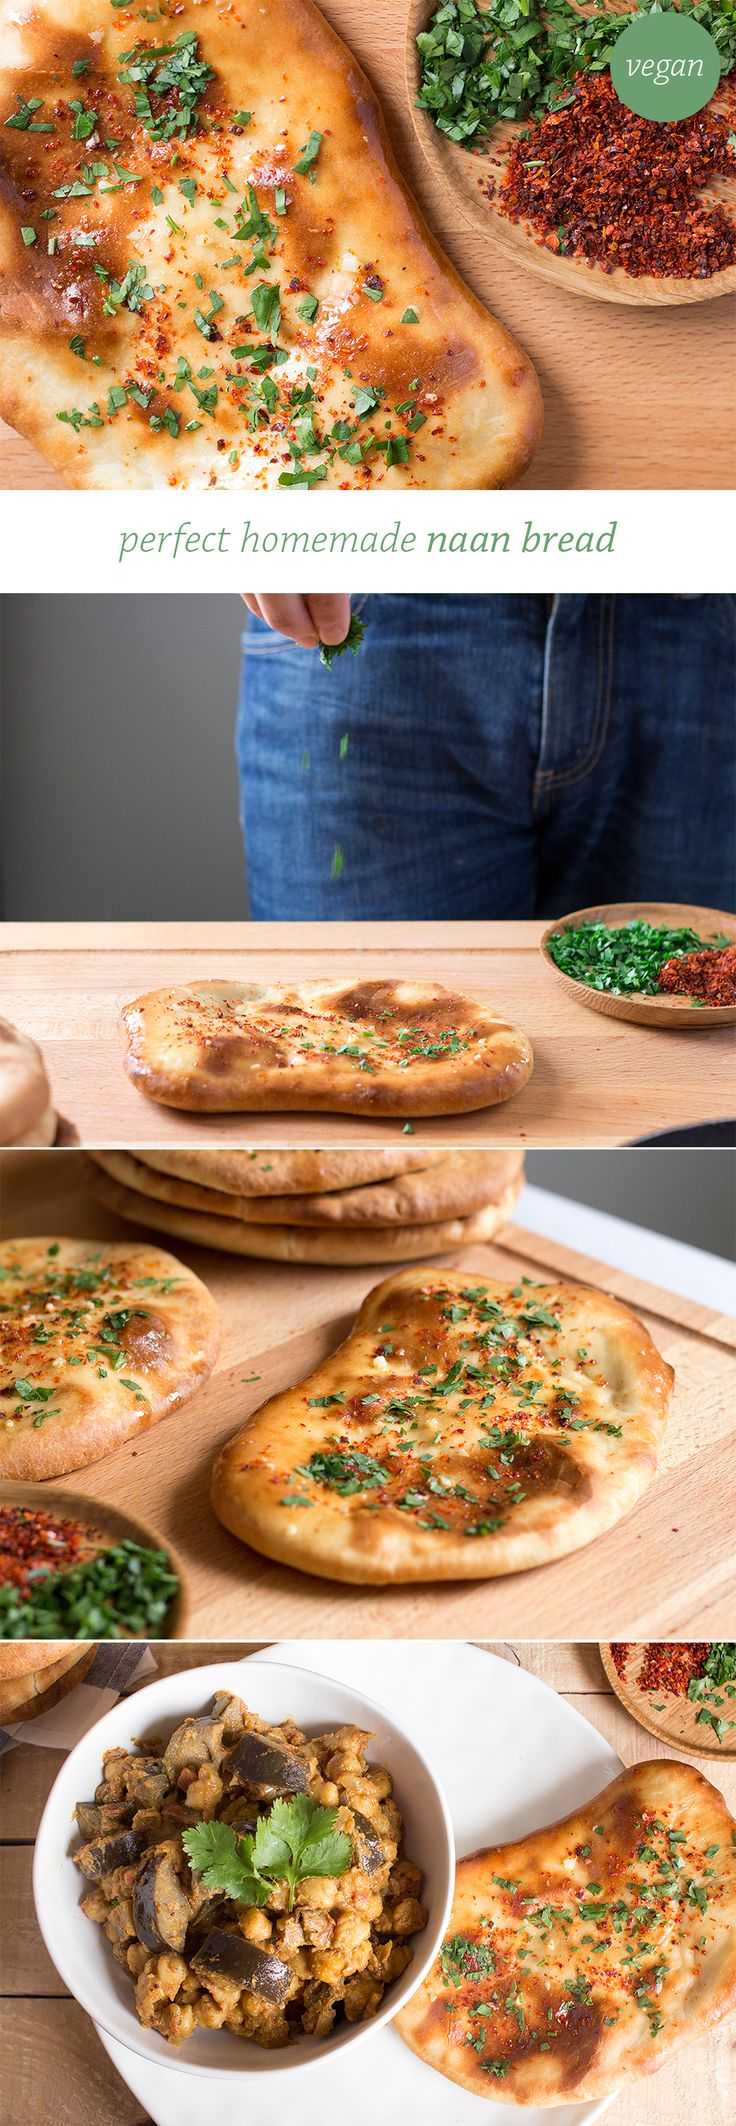 Homemade naan bread topped with garlic-infused oil, chilli, parsley and salt. It goes deliciously well with a good curry and it's vegan. #naan #bread #vegan #recipe #recipes